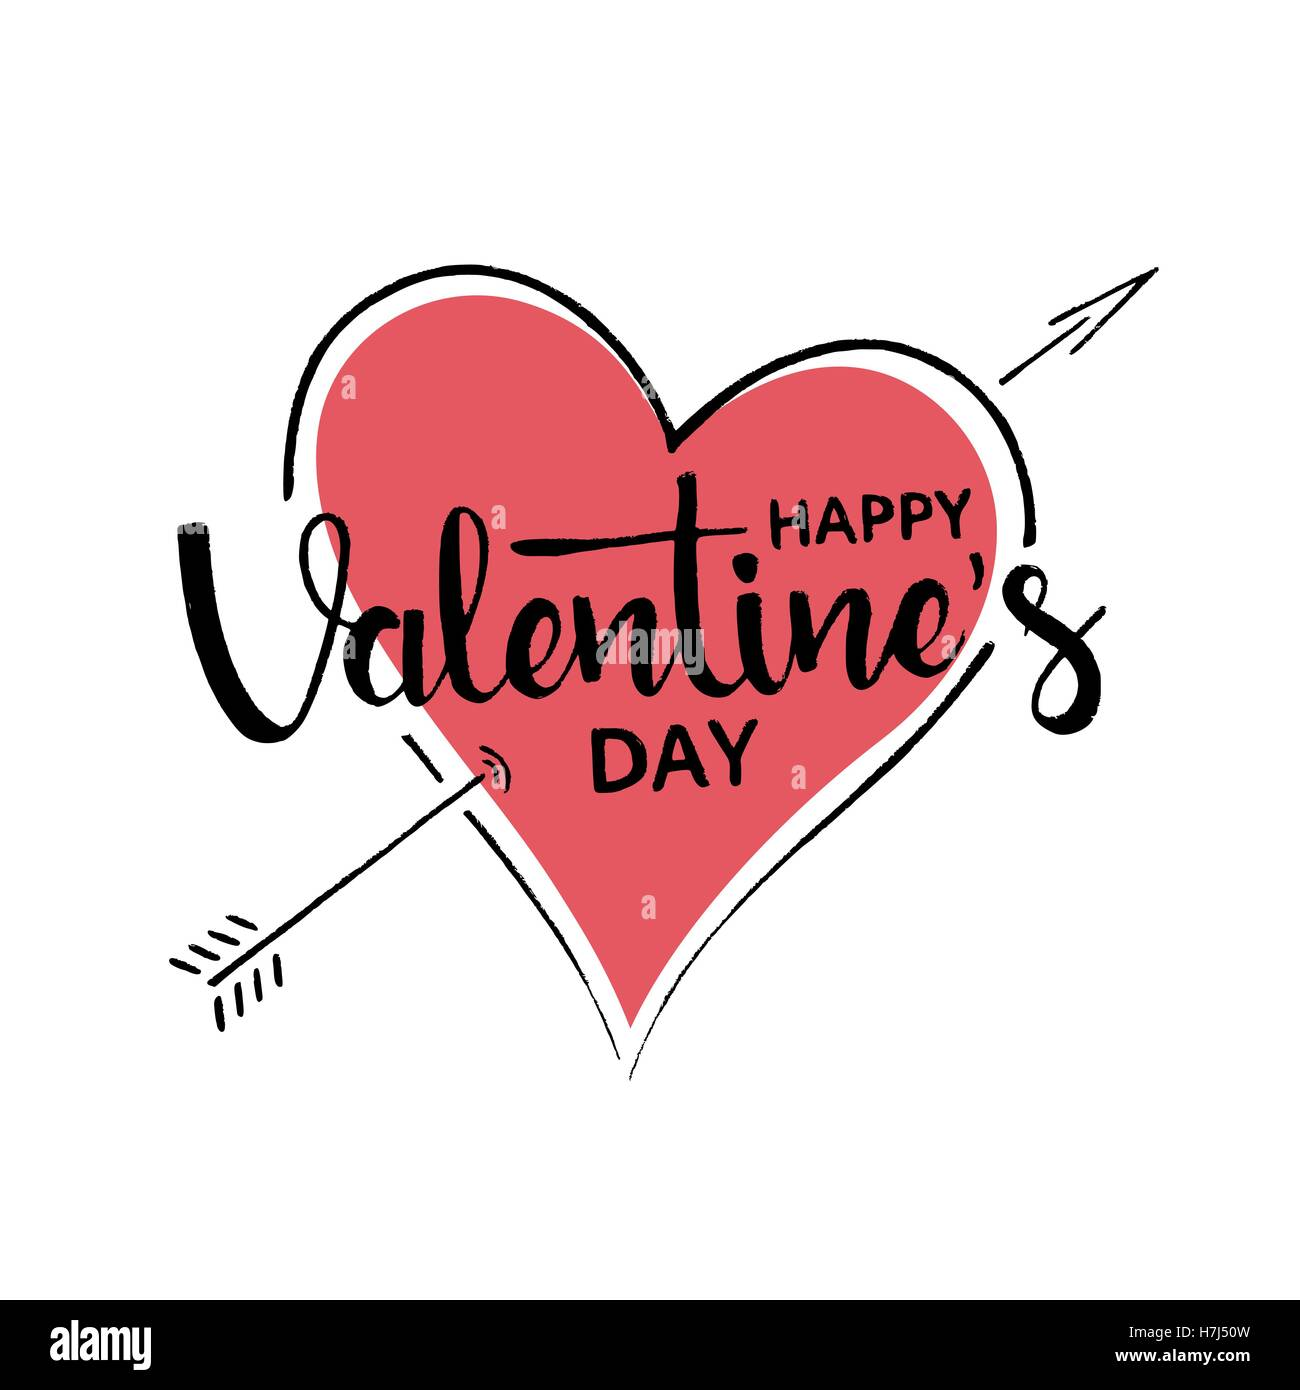 Happy Valentines Day Words Stock Vector Images Alamy